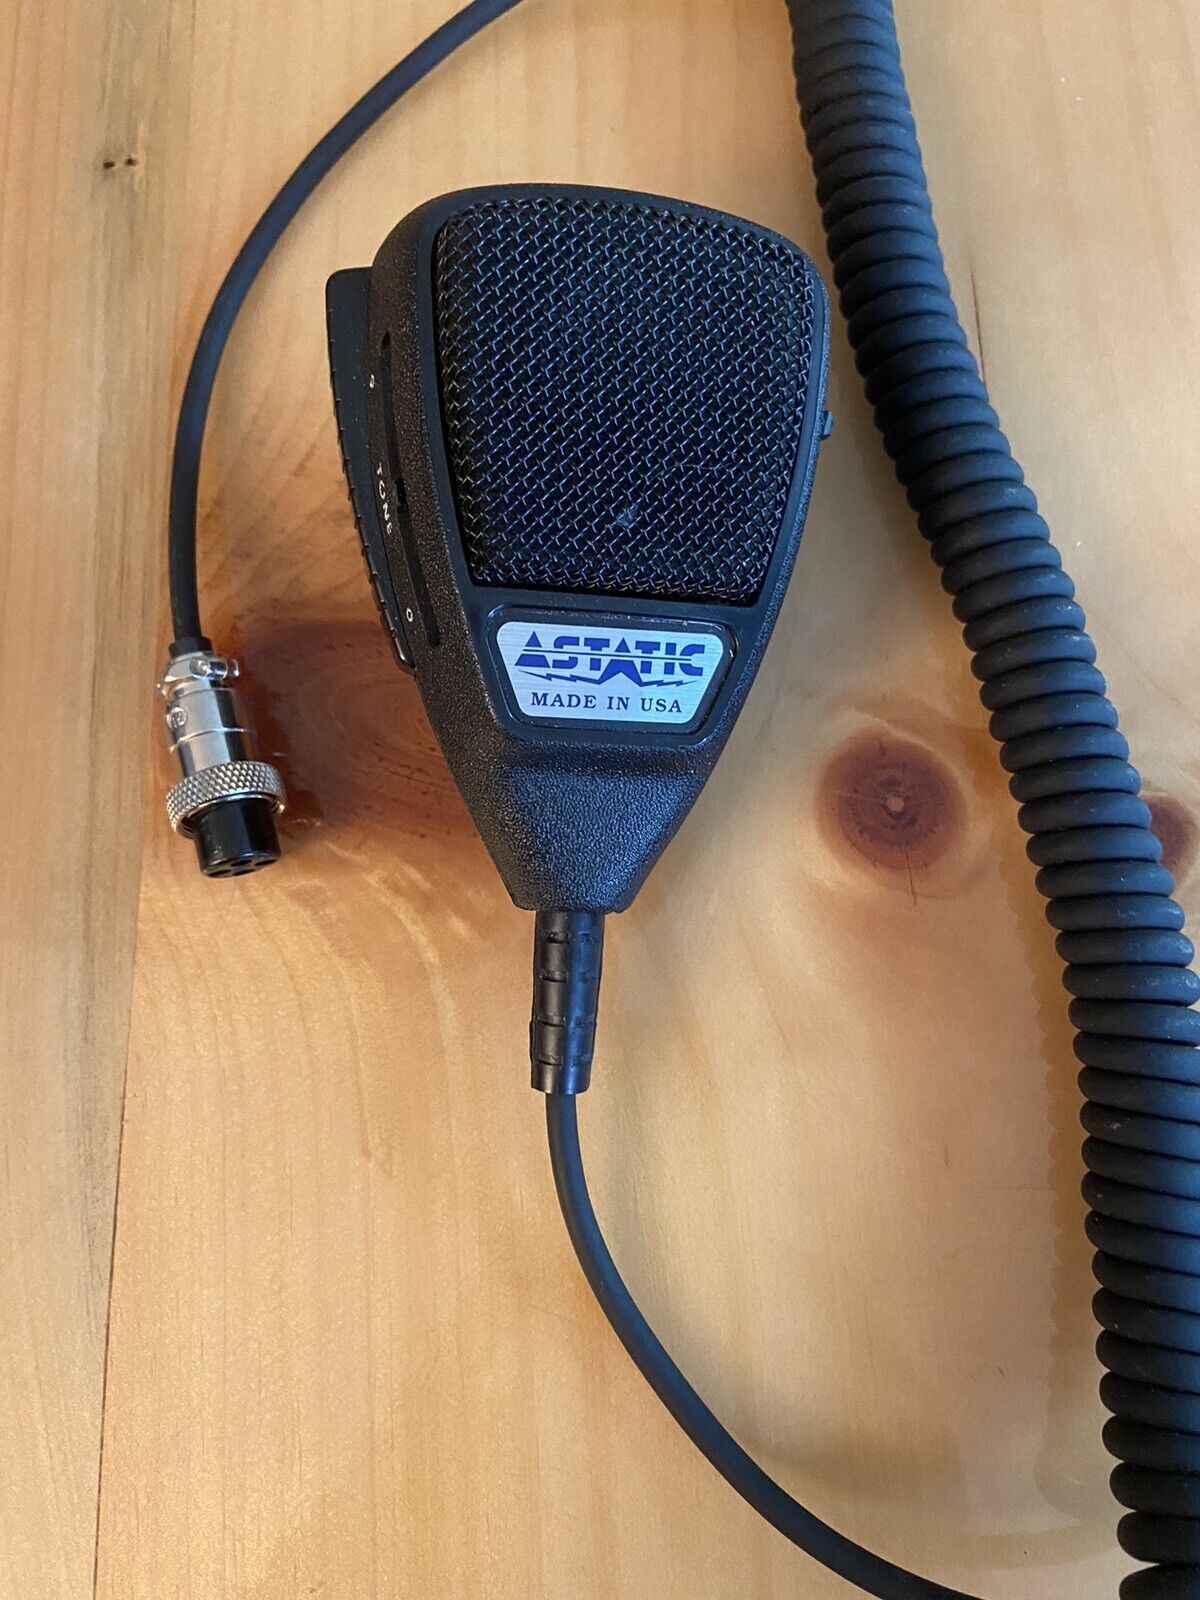 New Astatic model 575-m6 Amplified CB Hand Held Mic. Available Now for 299.99